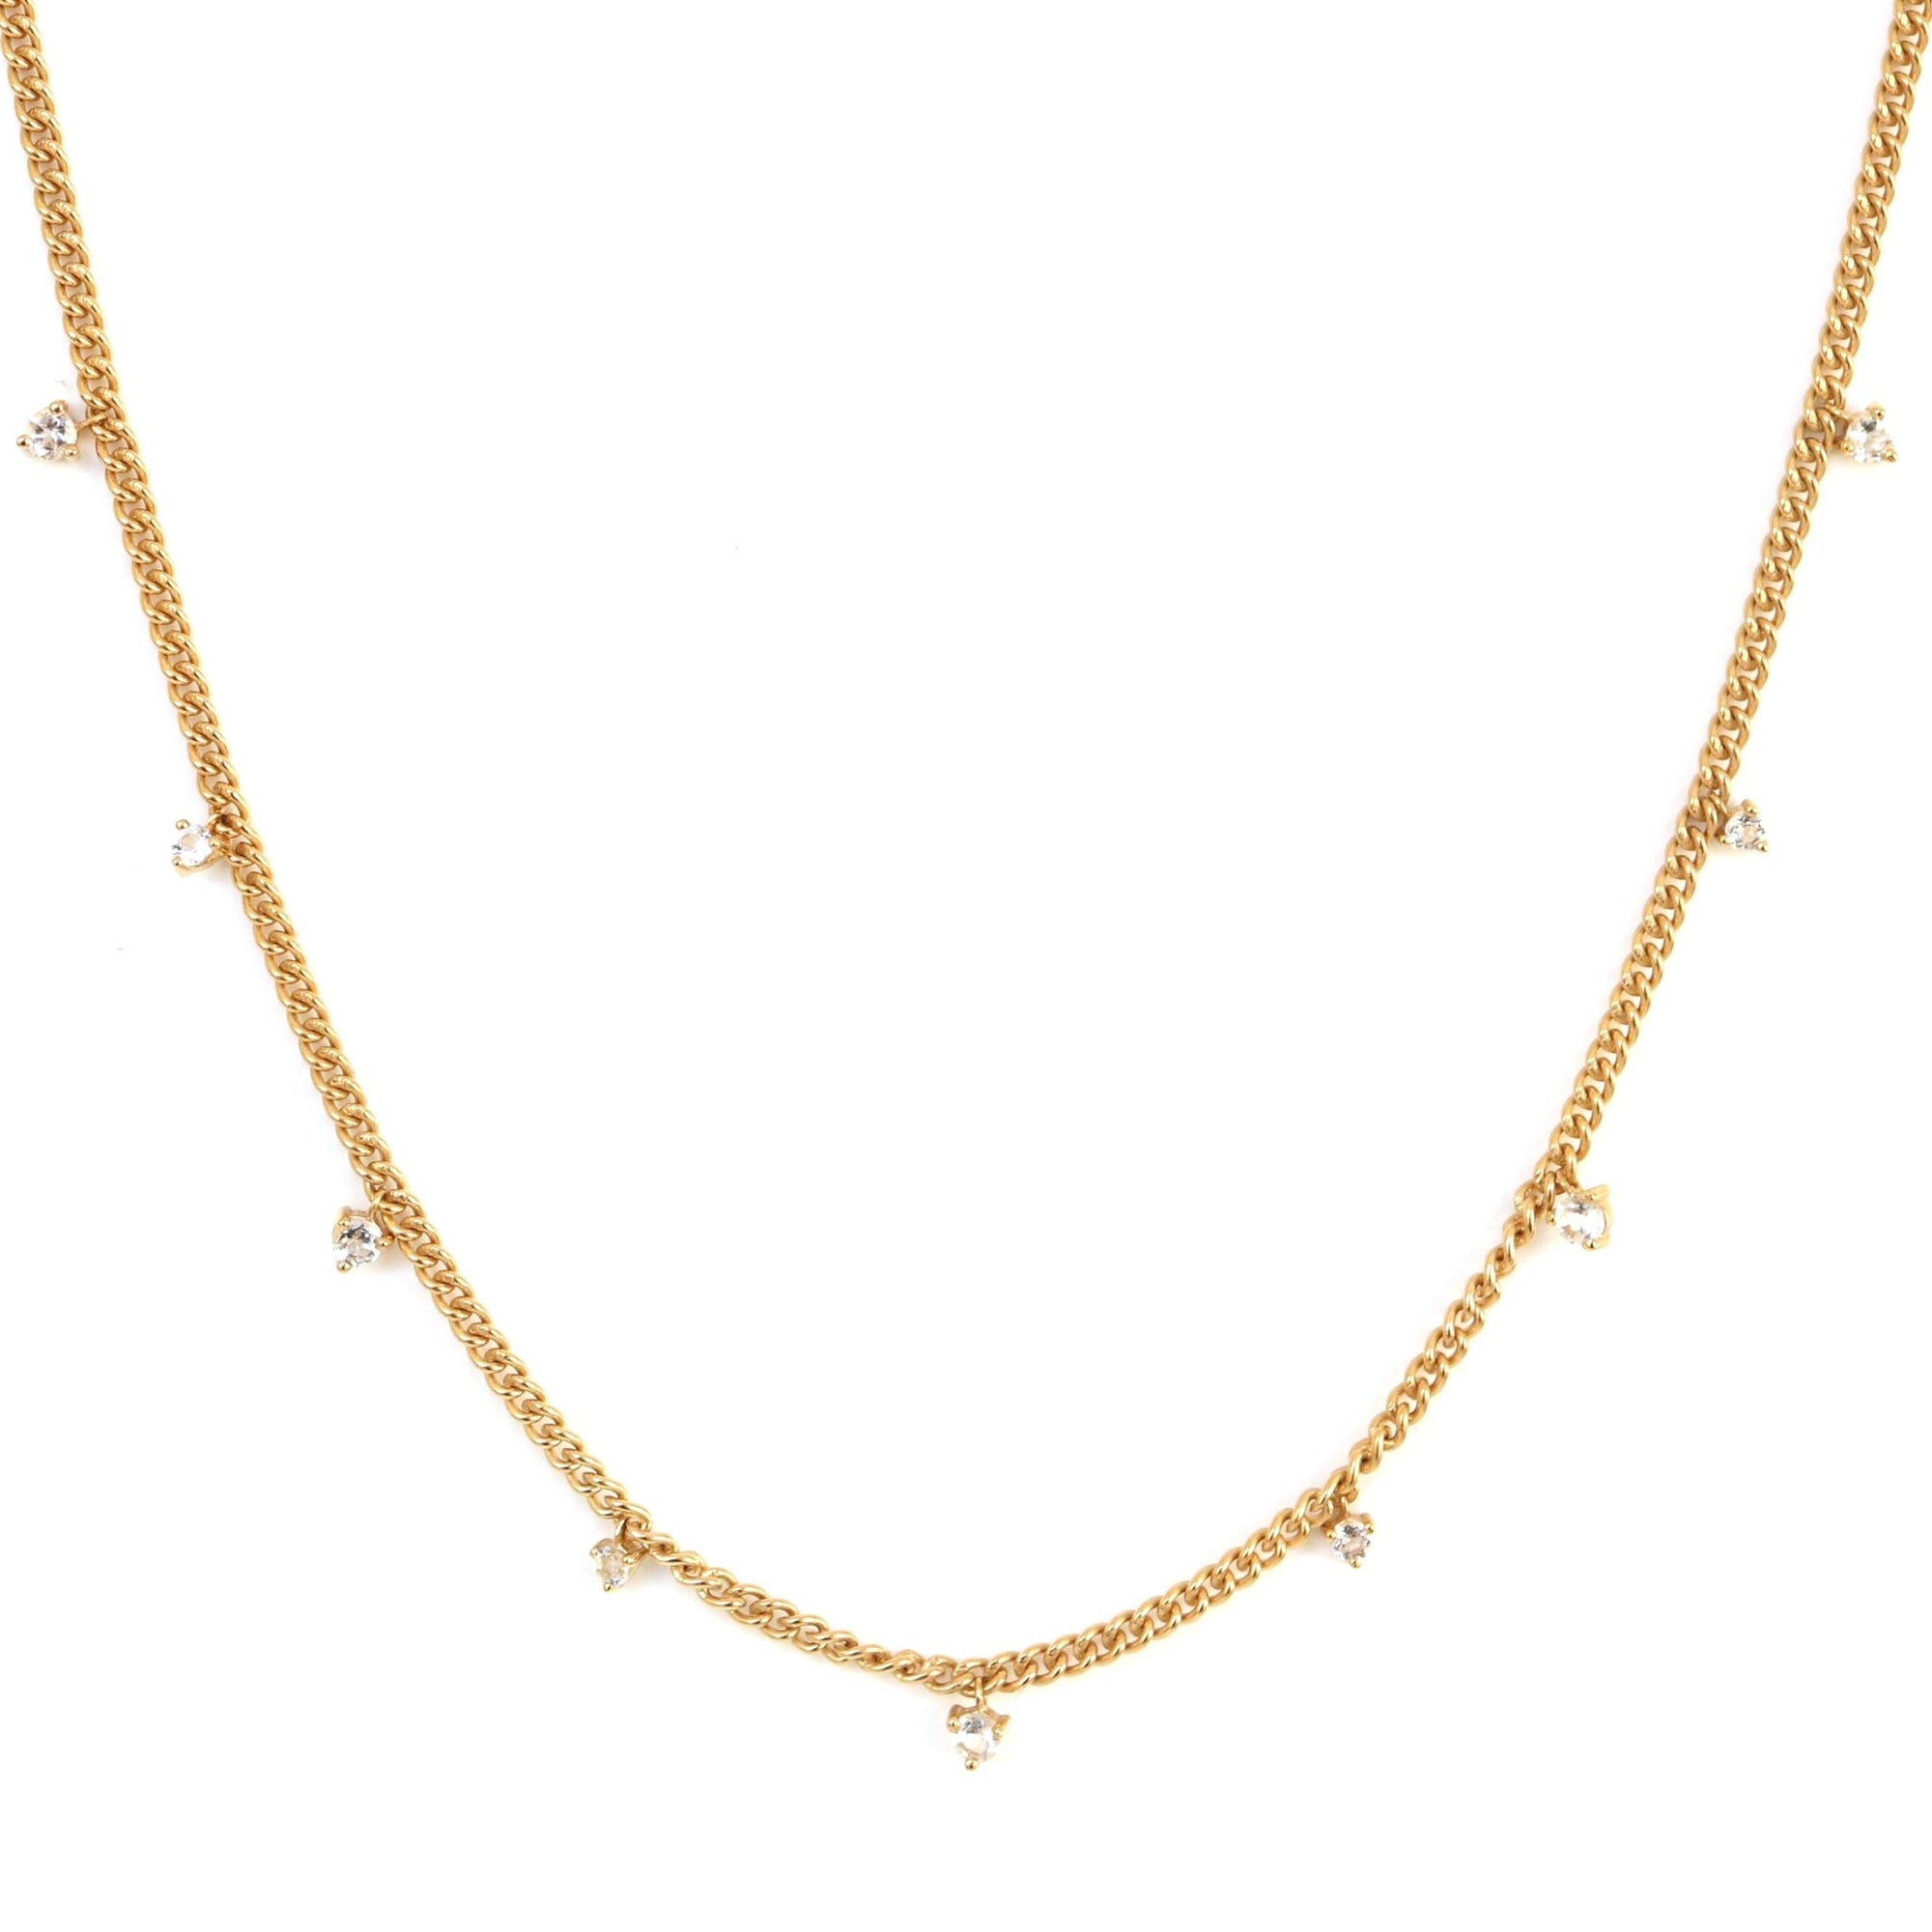 UNITY CROWN CURB LINK NECKLACE - WHITE TOPAZ & GOLD - SO PRETTY CARA COTTER